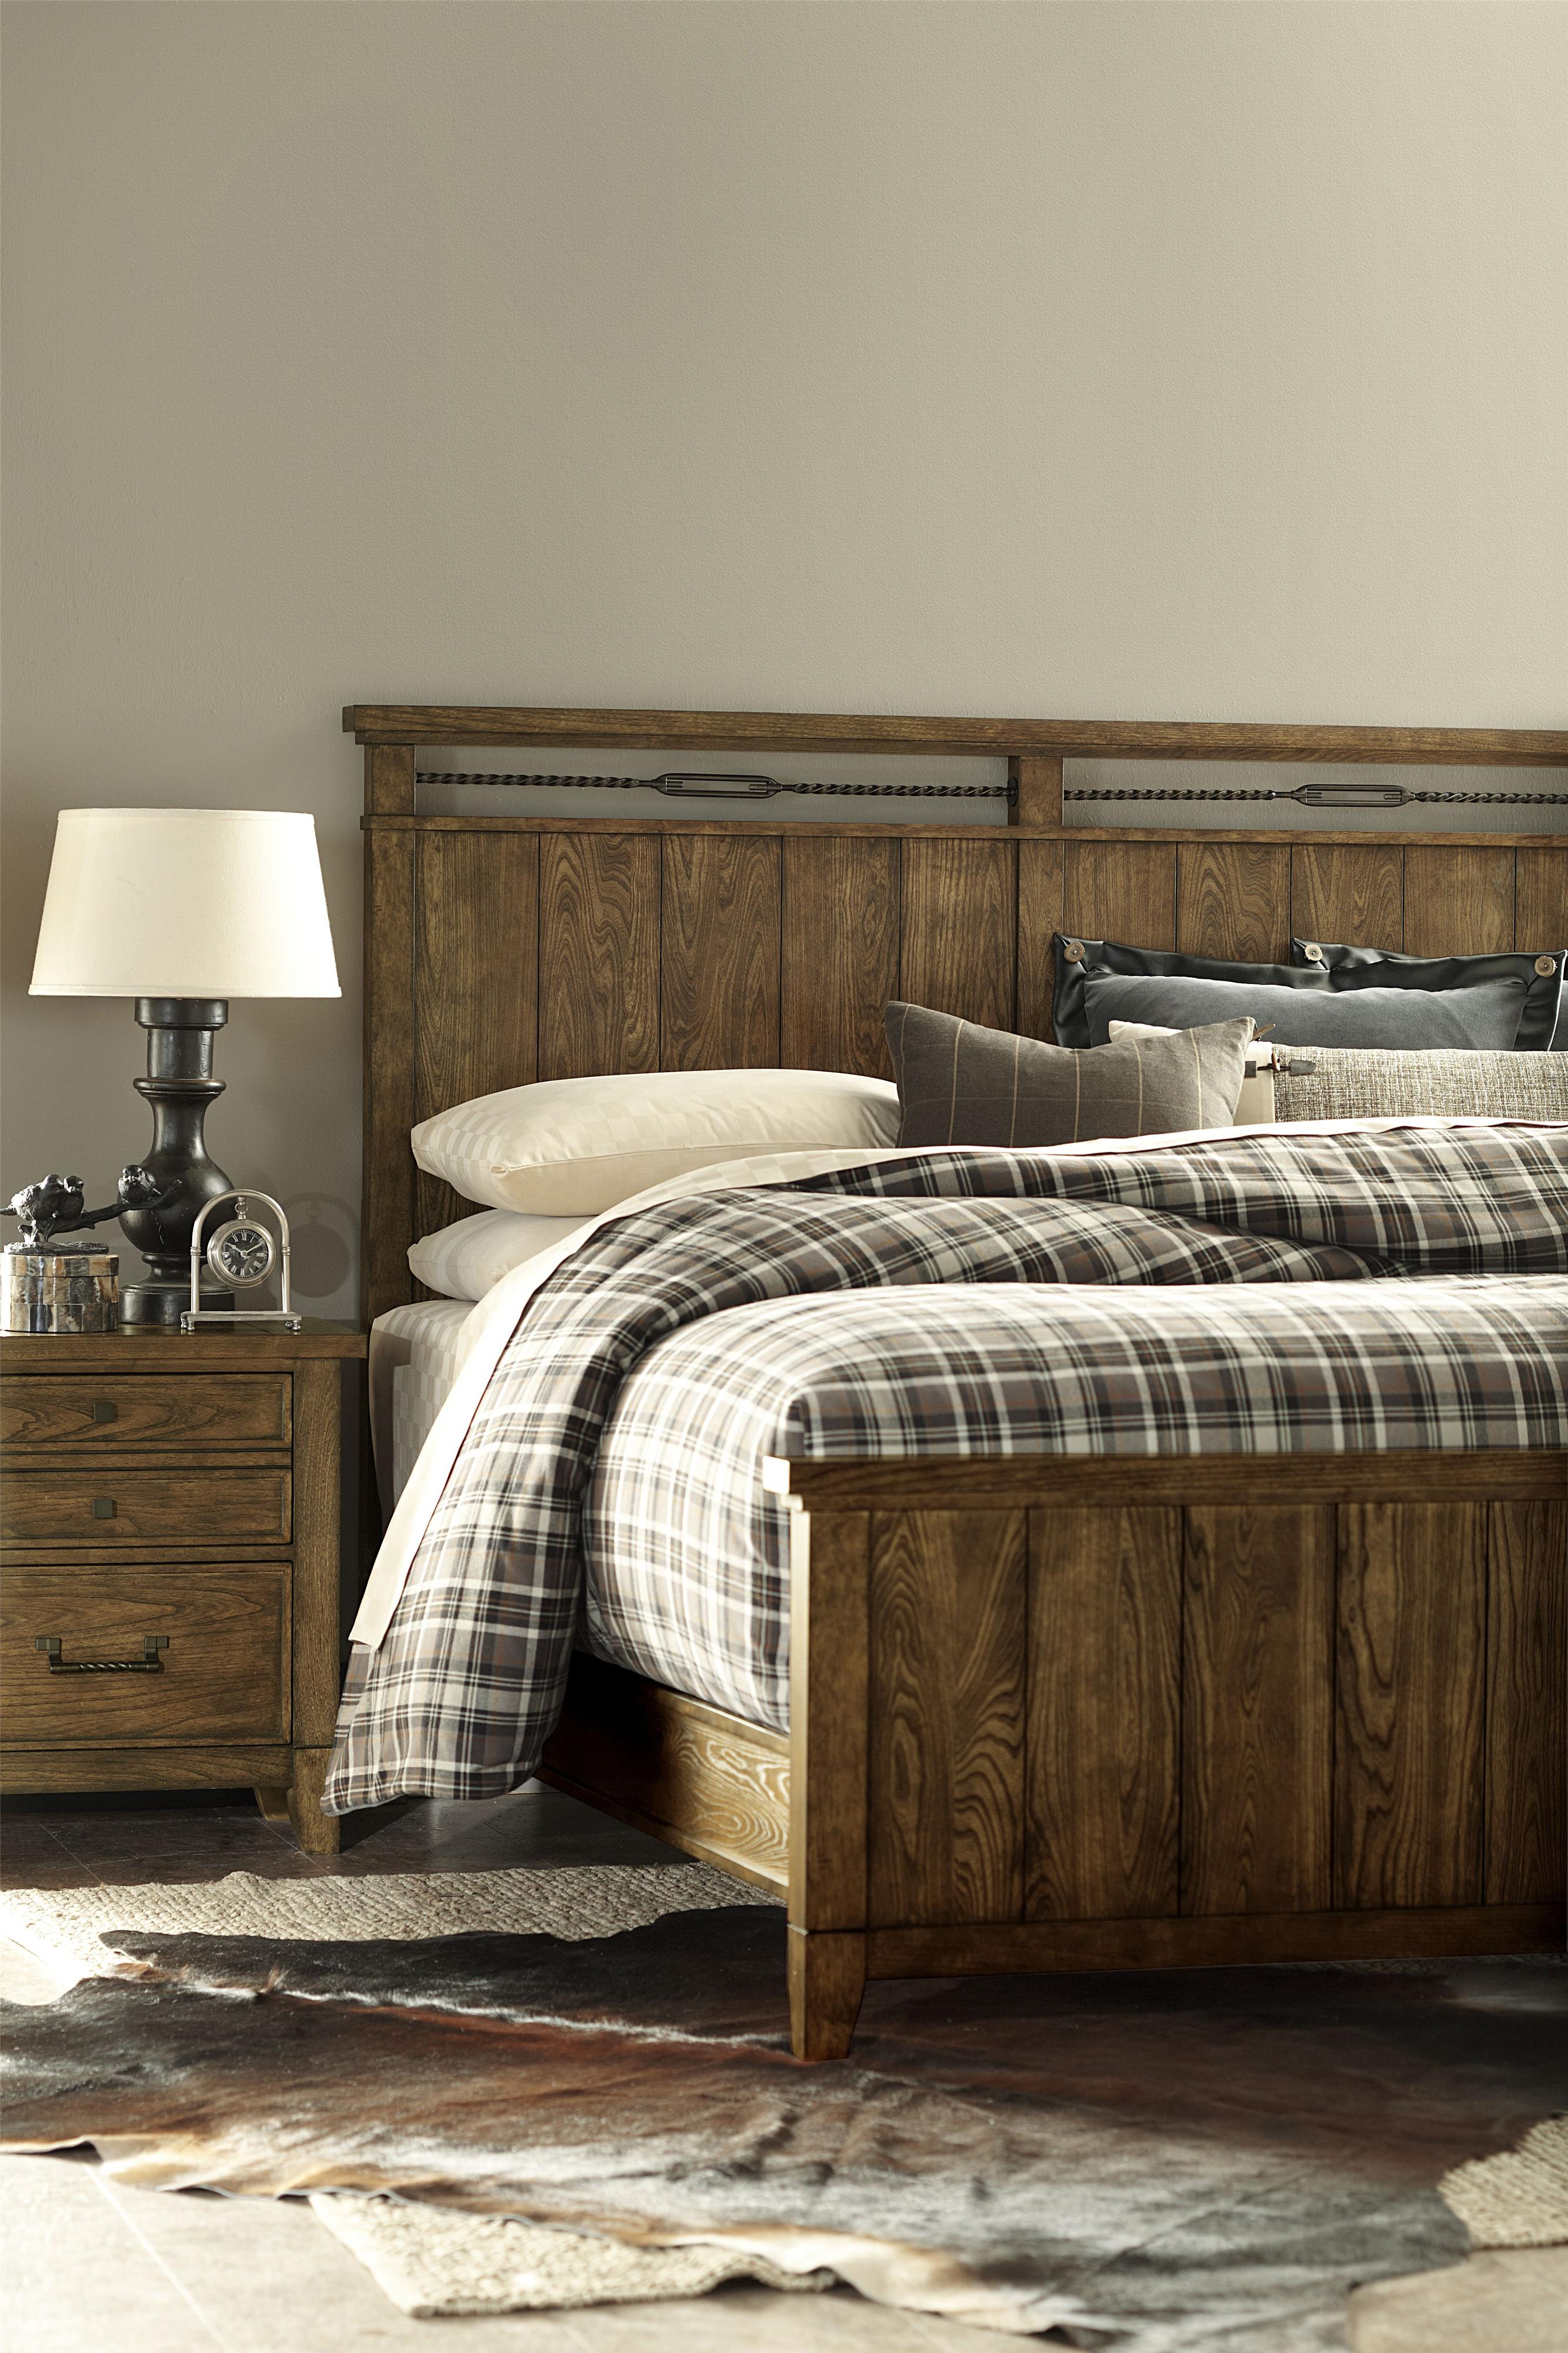 Legacy Classic River Run King Bedroom Group - Item Number: 4740 K Bedroom Group 2